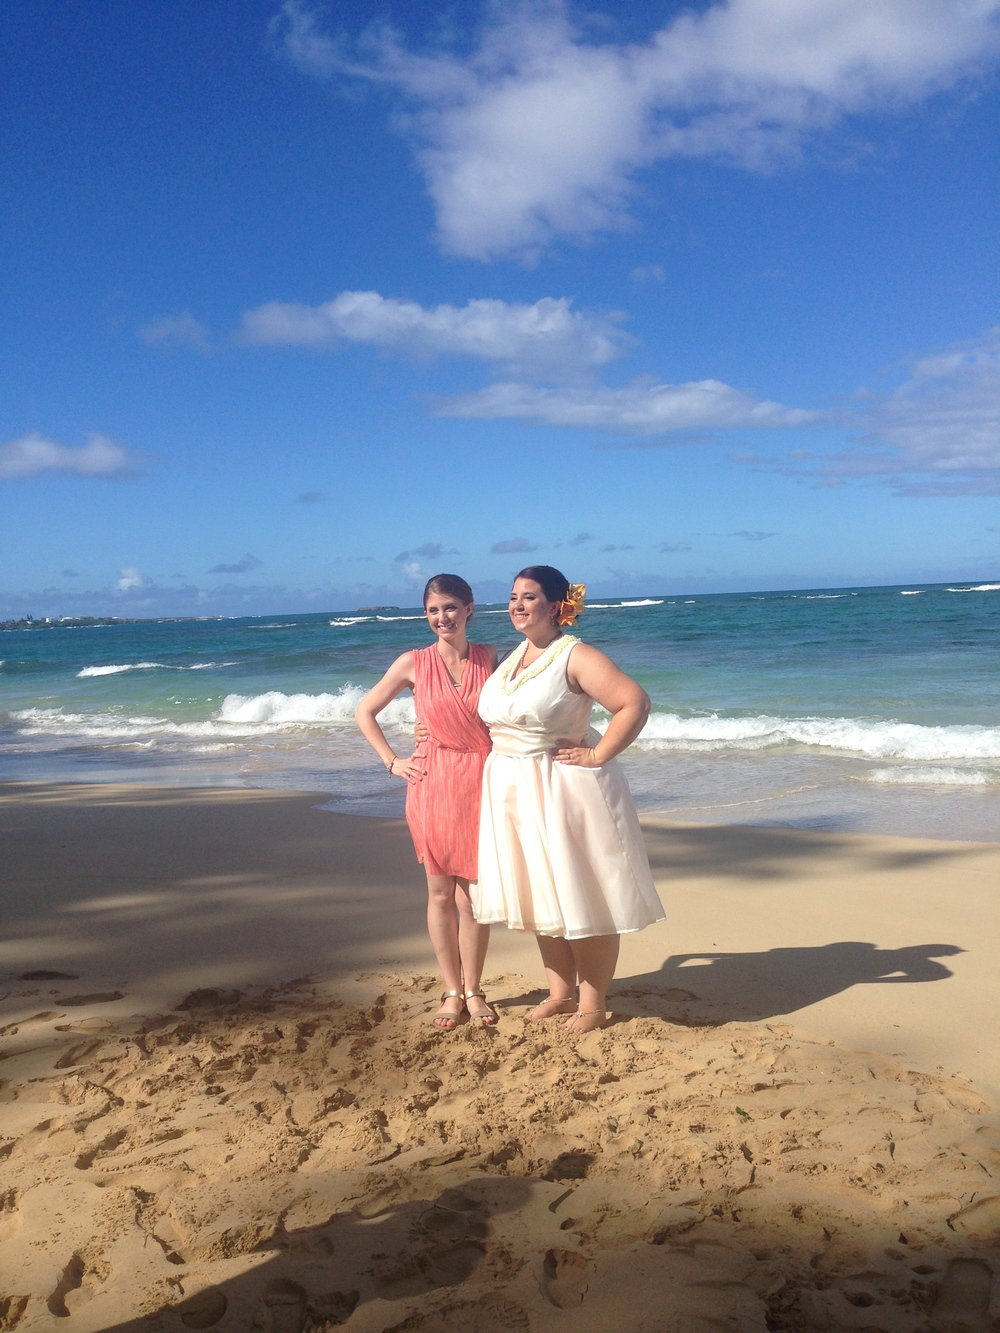 15-beach-wedding-hawaii.jpg